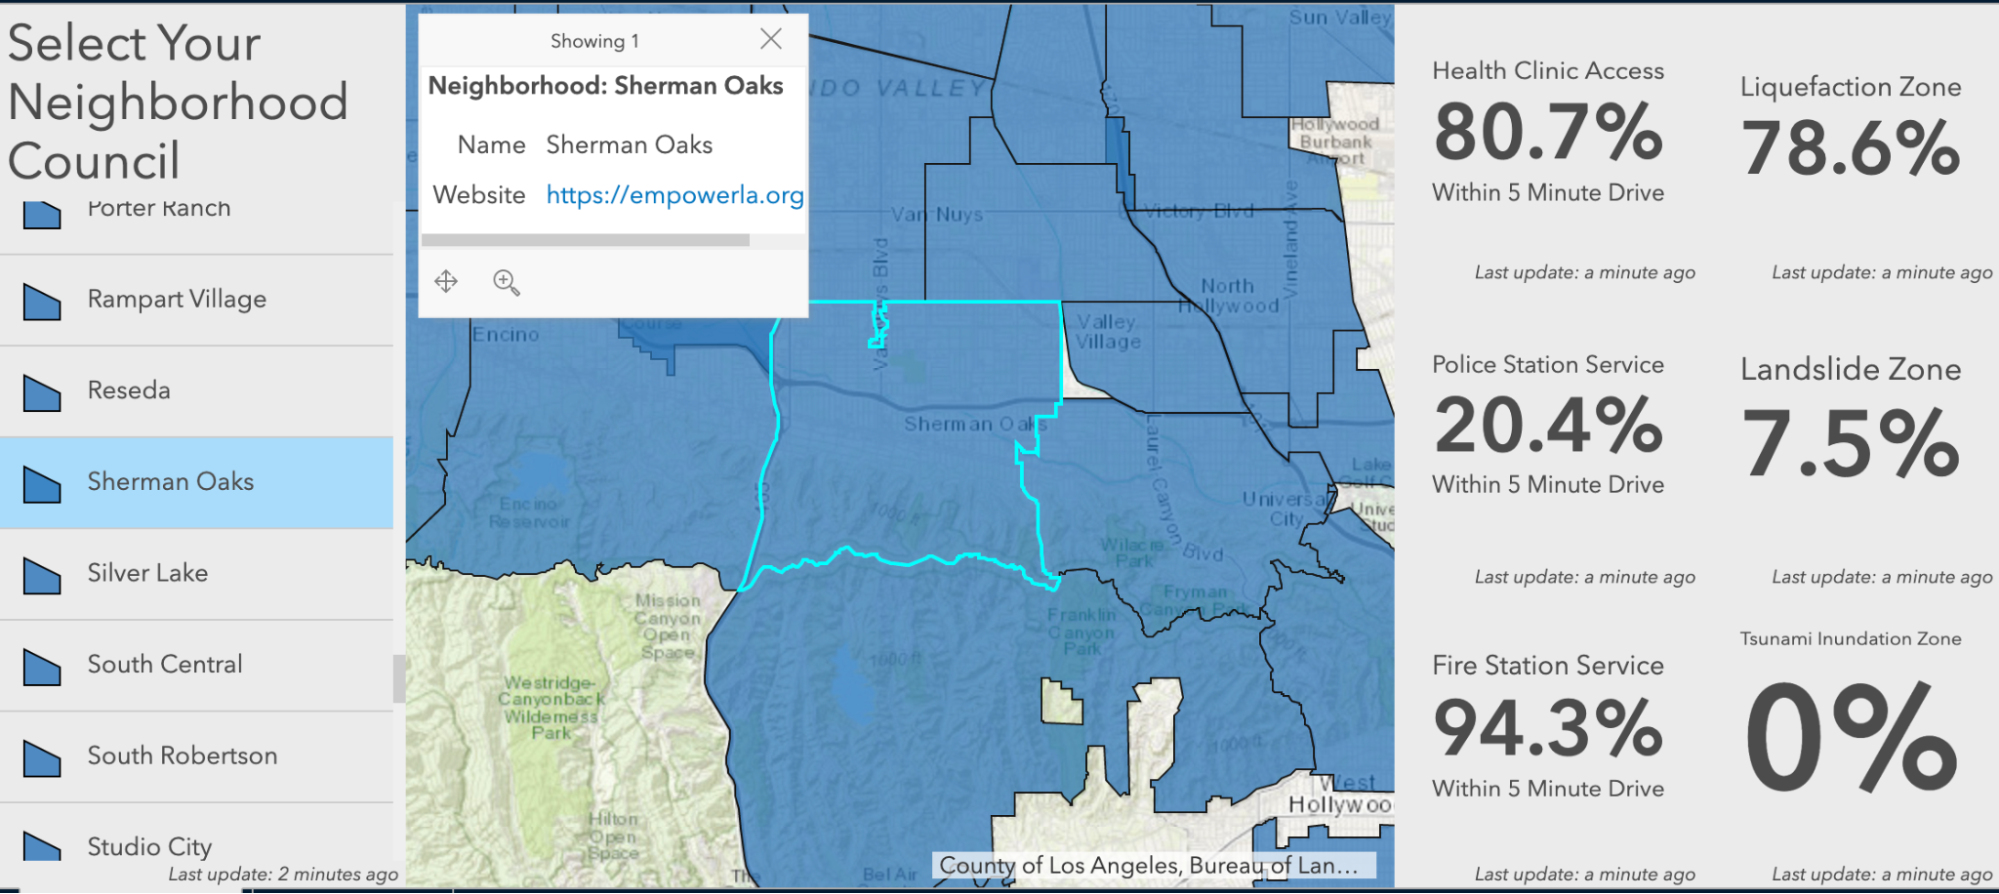 Navigable map showing county division and key statistics for the selected neighborhood